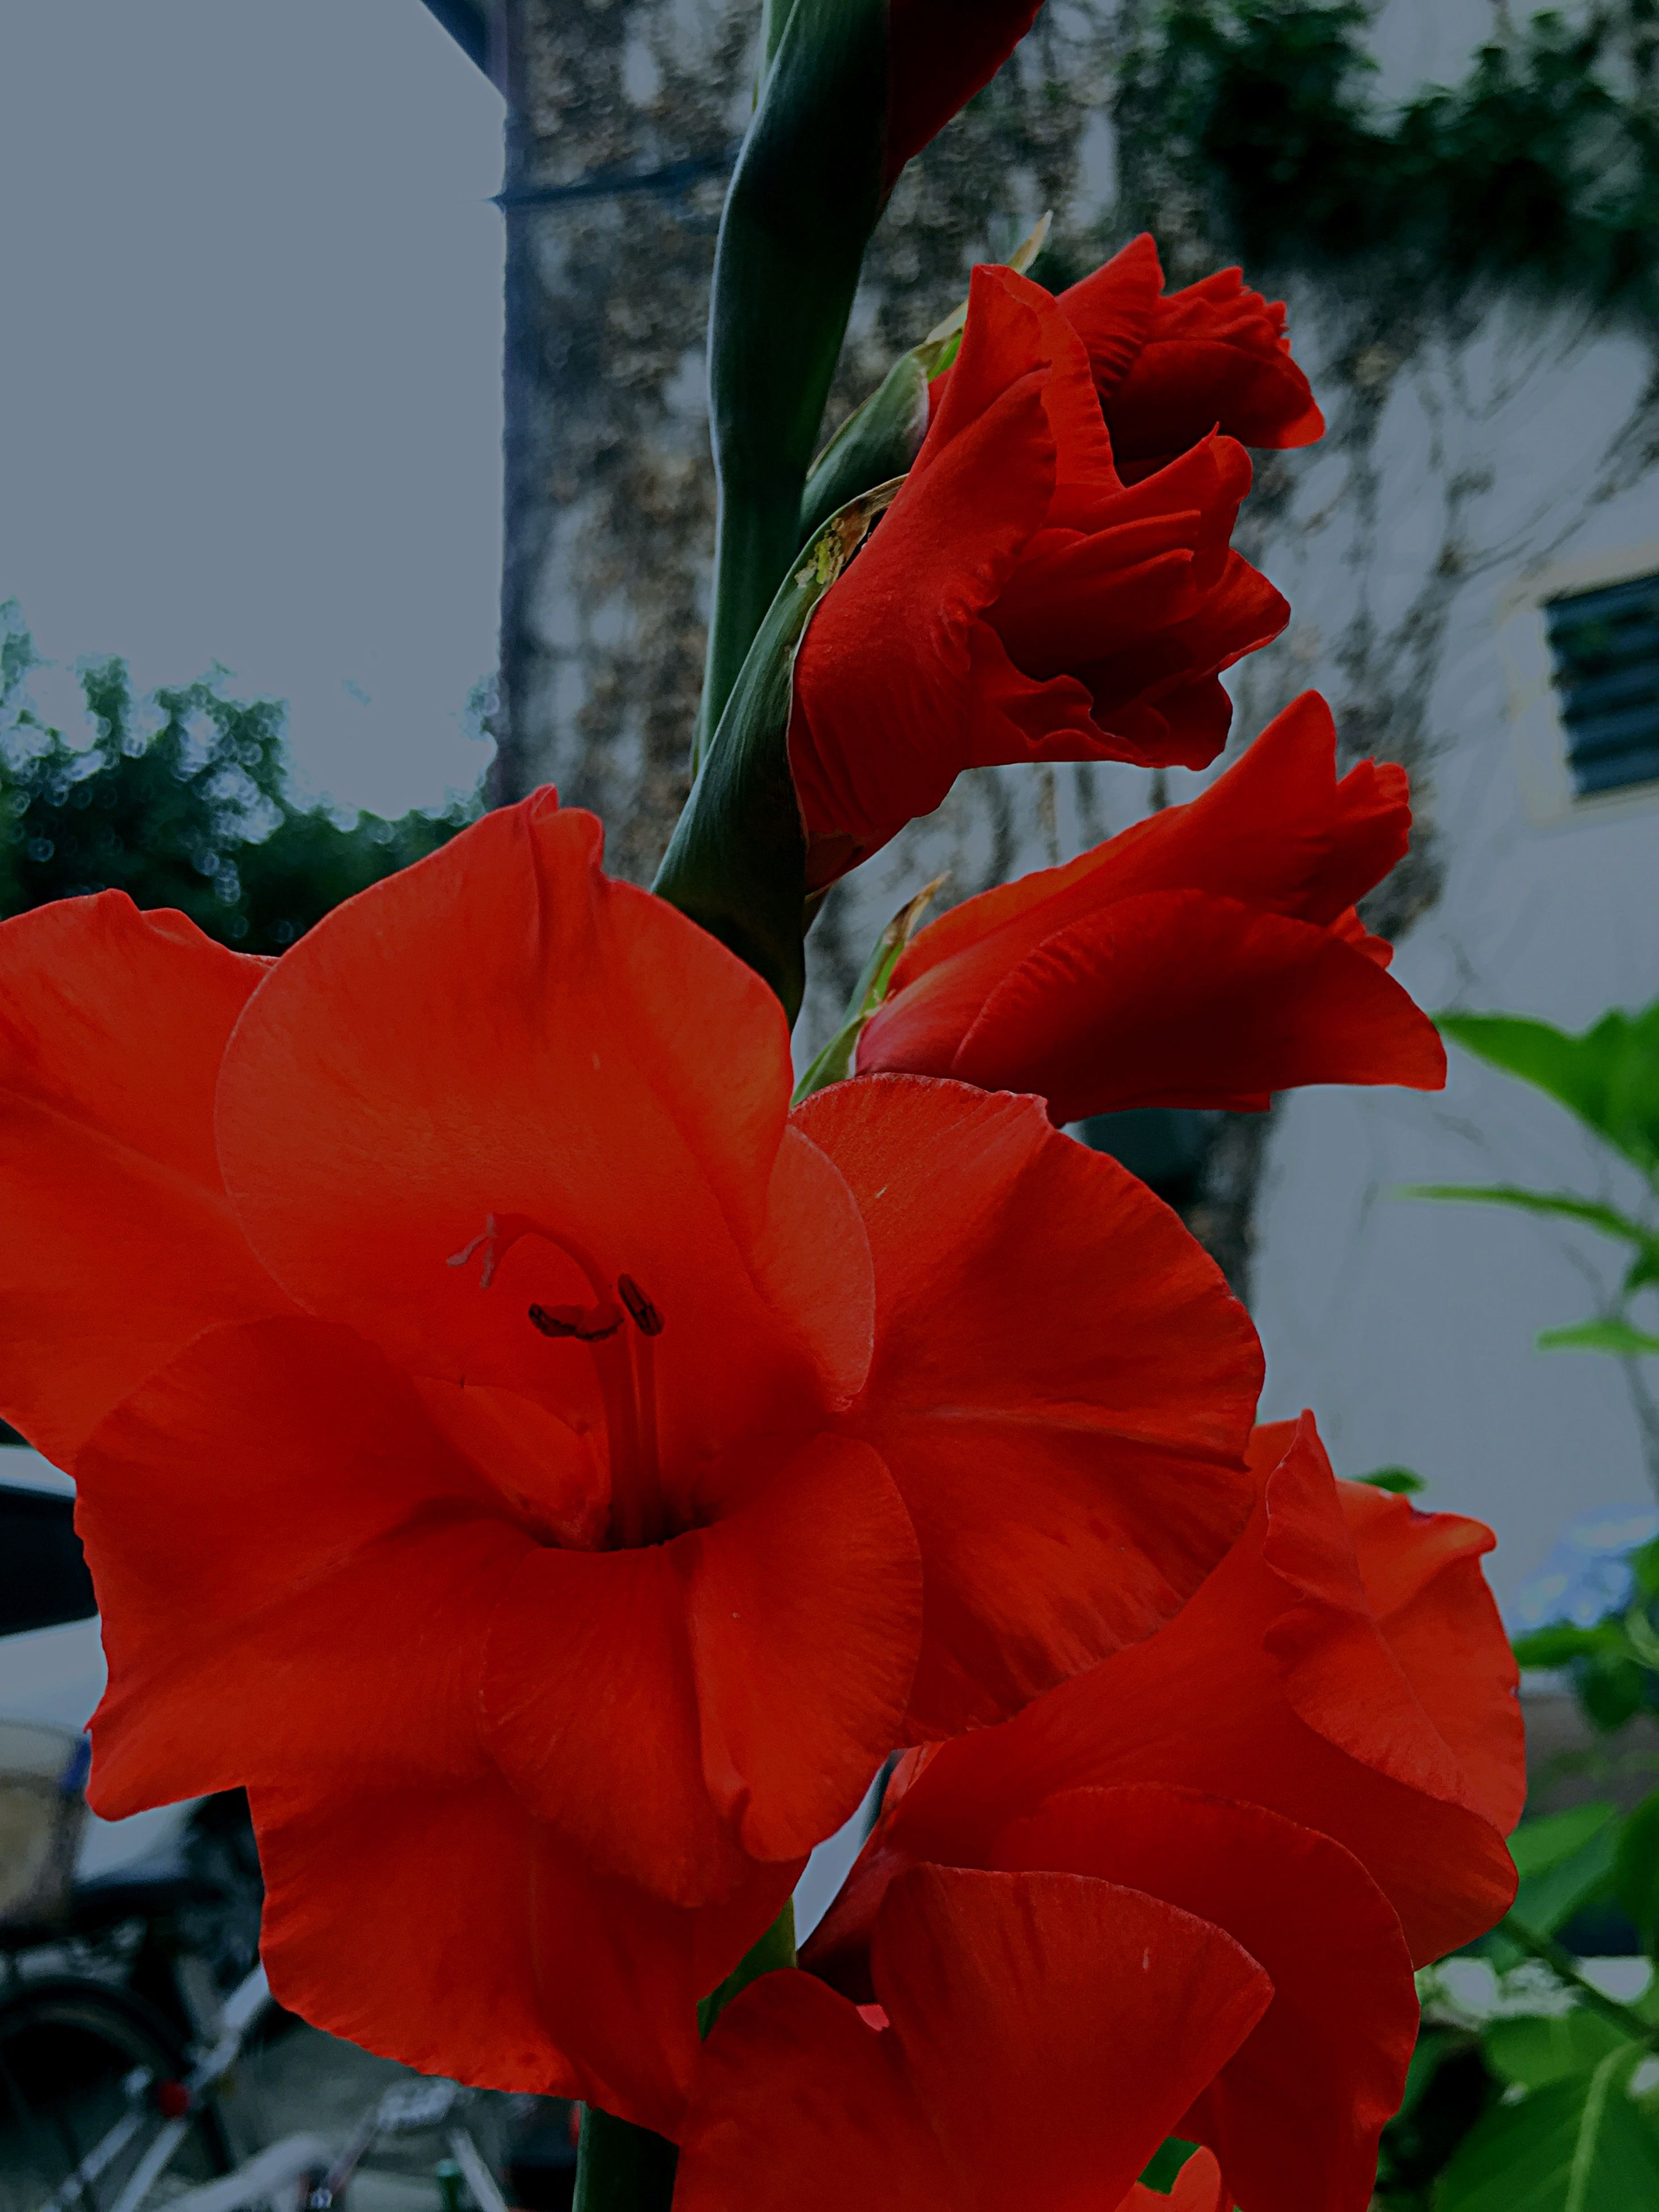 red, flower, petal, flower head, fragility, freshness, growth, close-up, focus on foreground, beauty in nature, blooming, plant, nature, orange color, leaf, stamen, in bloom, single flower, pollen, day